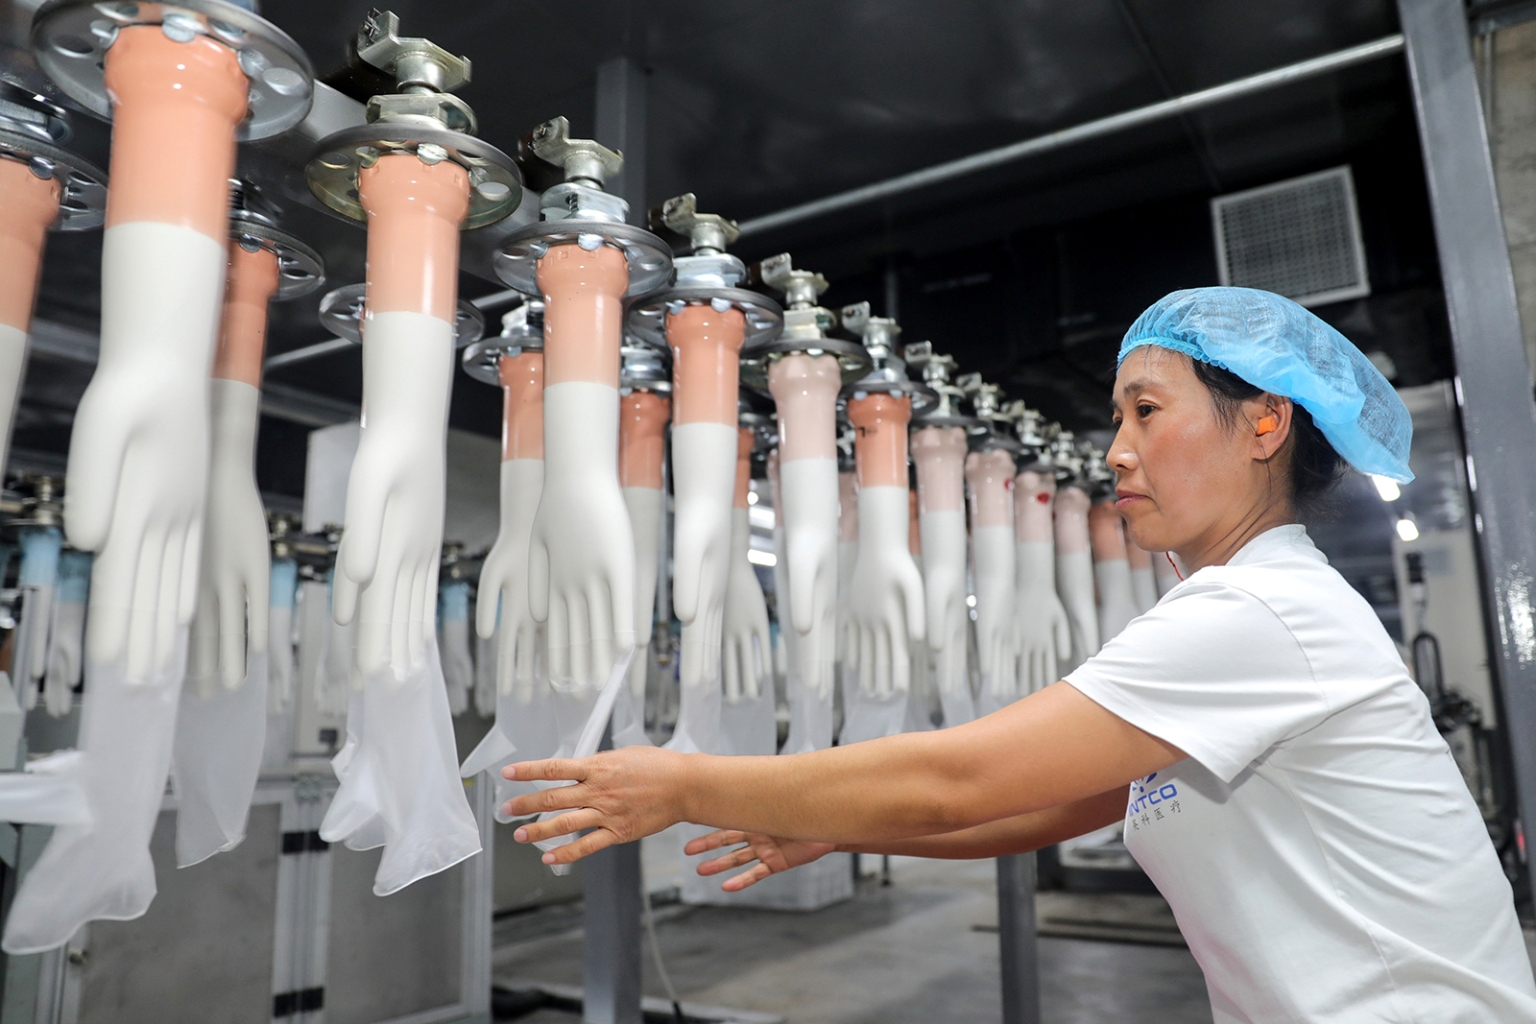 An employee works on a medical glove production line at a factory in Huaibei in China's eastern Anhui province on Aug. 14. STR/AFP/Getty Images